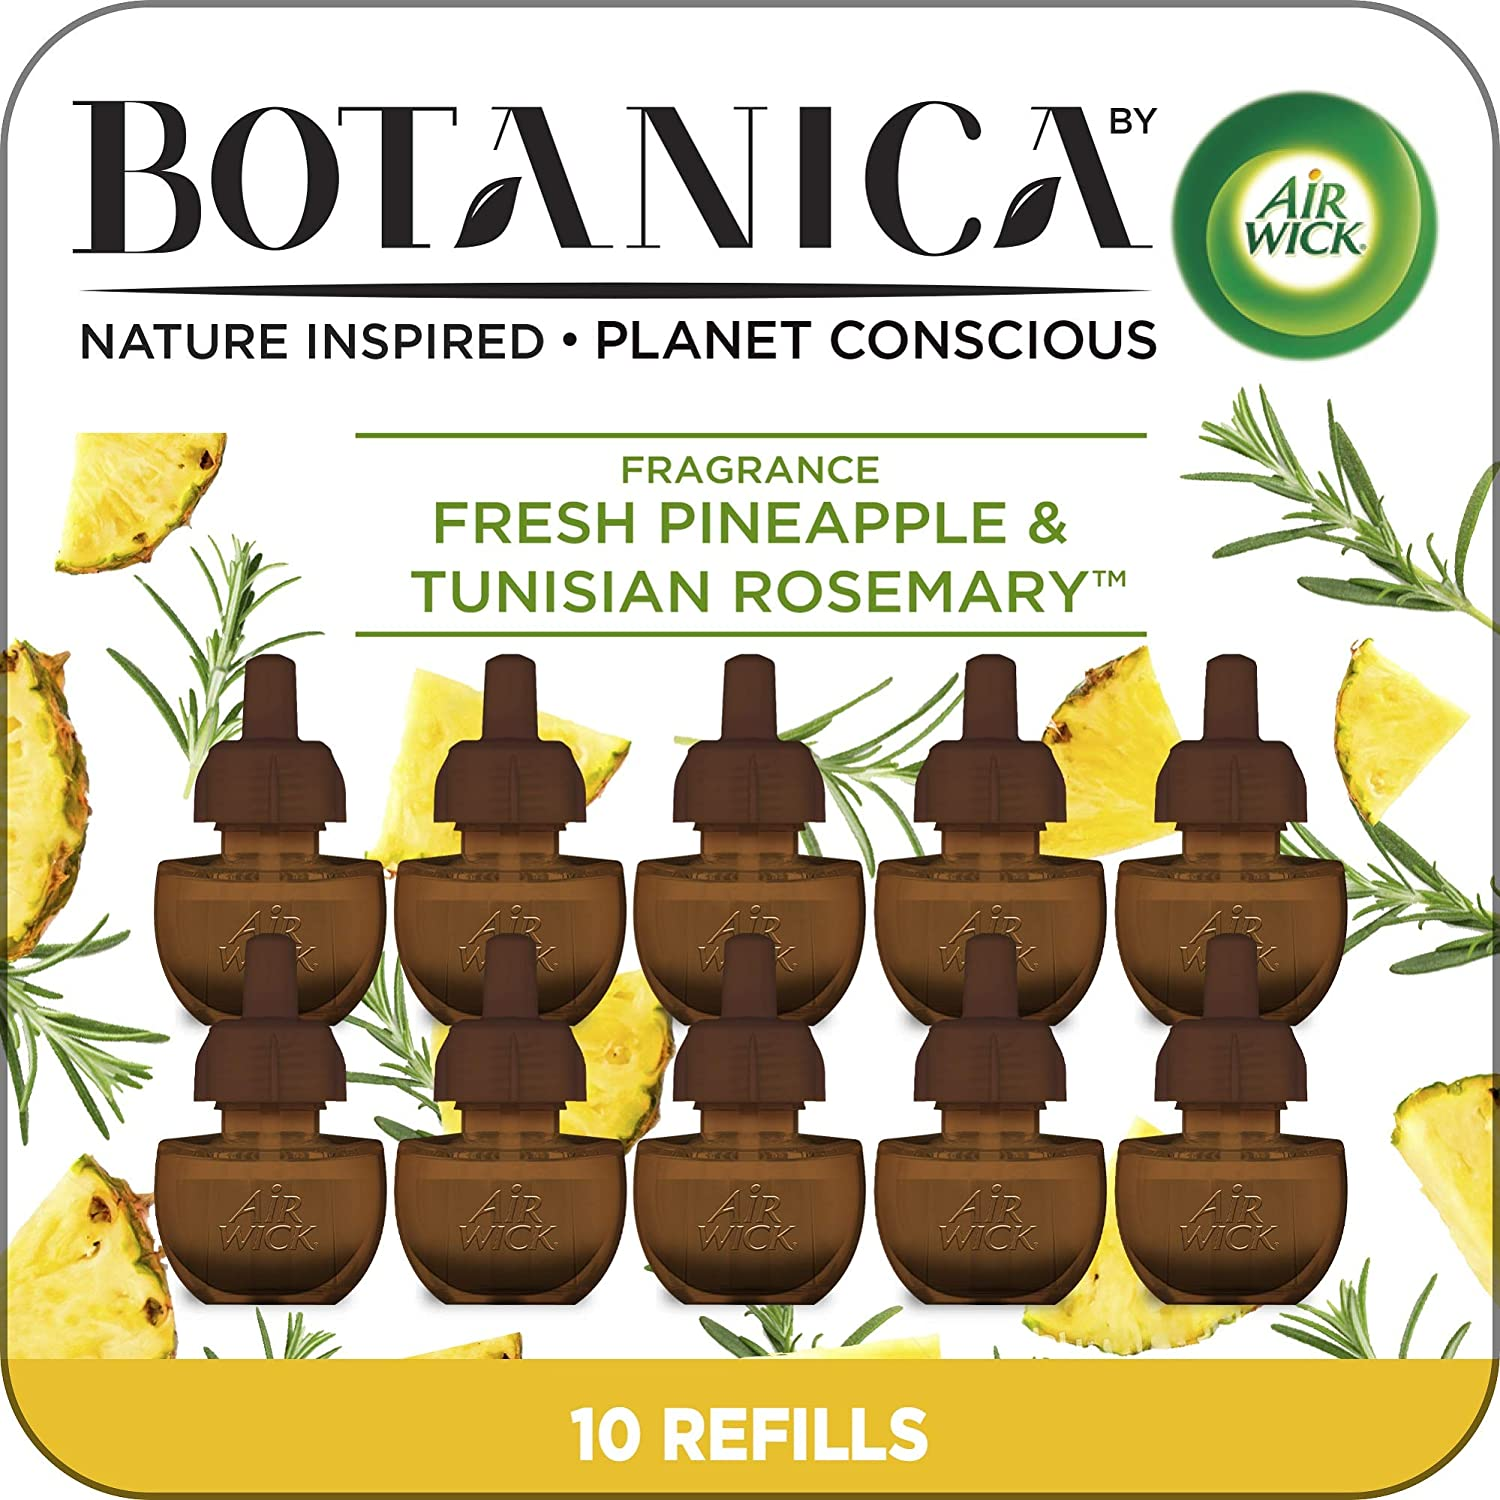 Botanica by Air Wick Plug in Scented Oil, 10 Refills, Fresh Pineapple and Tunisian Rosemary, Air Freshener, Eco Friendly, Essential Oils